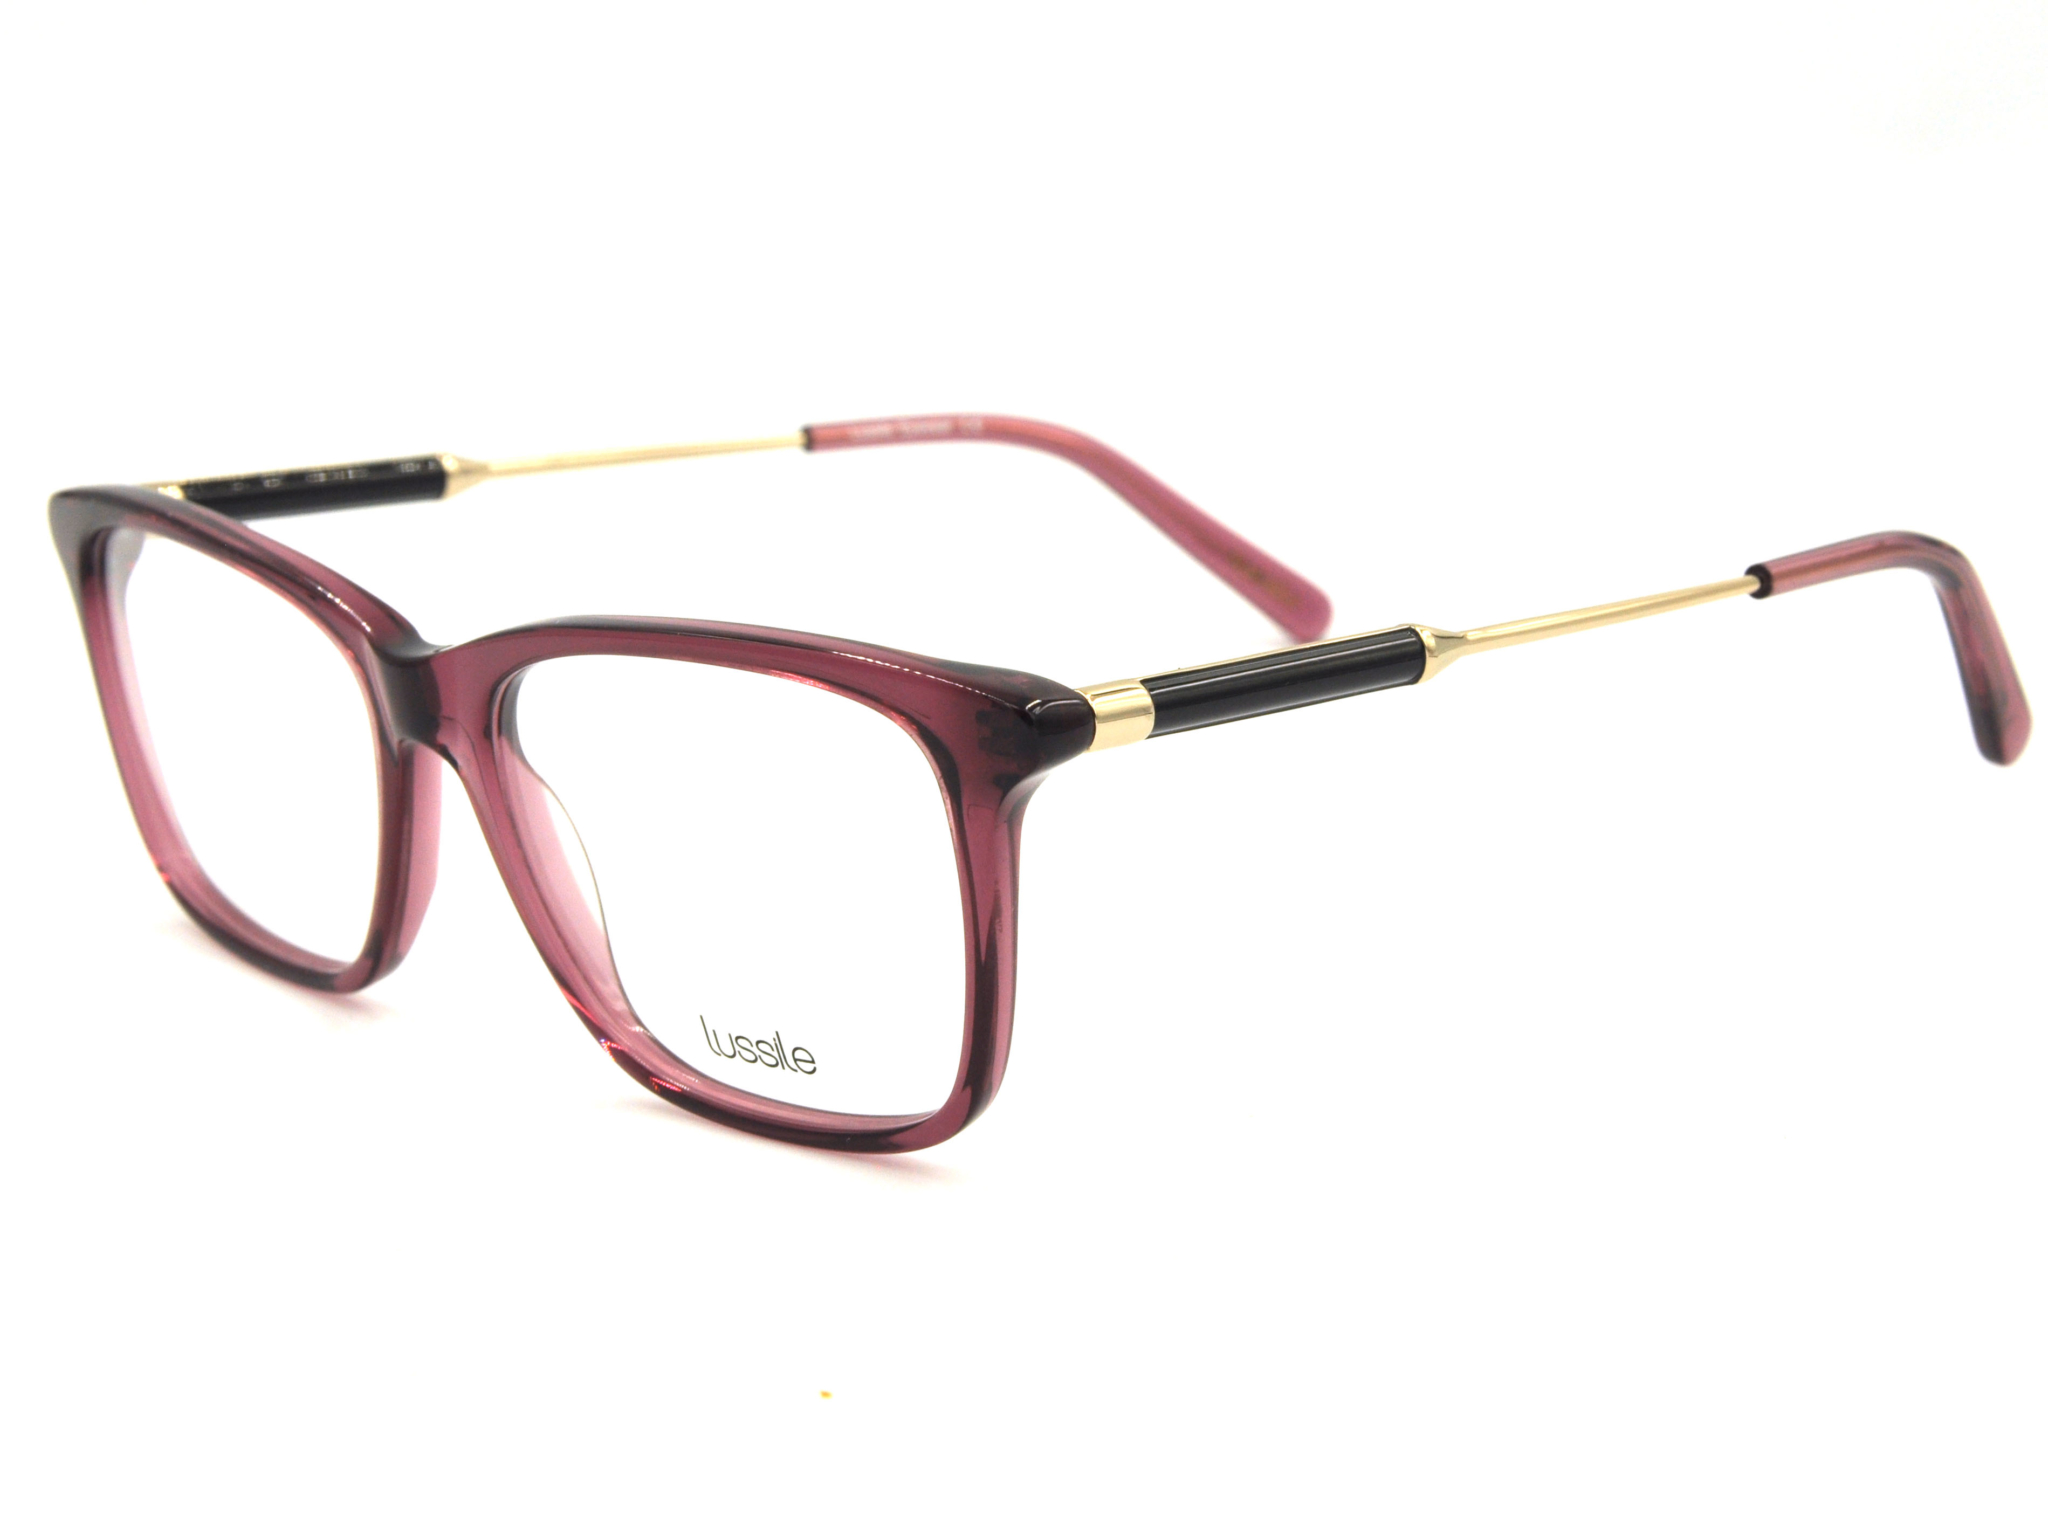 LUSSILE LS32200 LN05 Prescription Glasses 2020